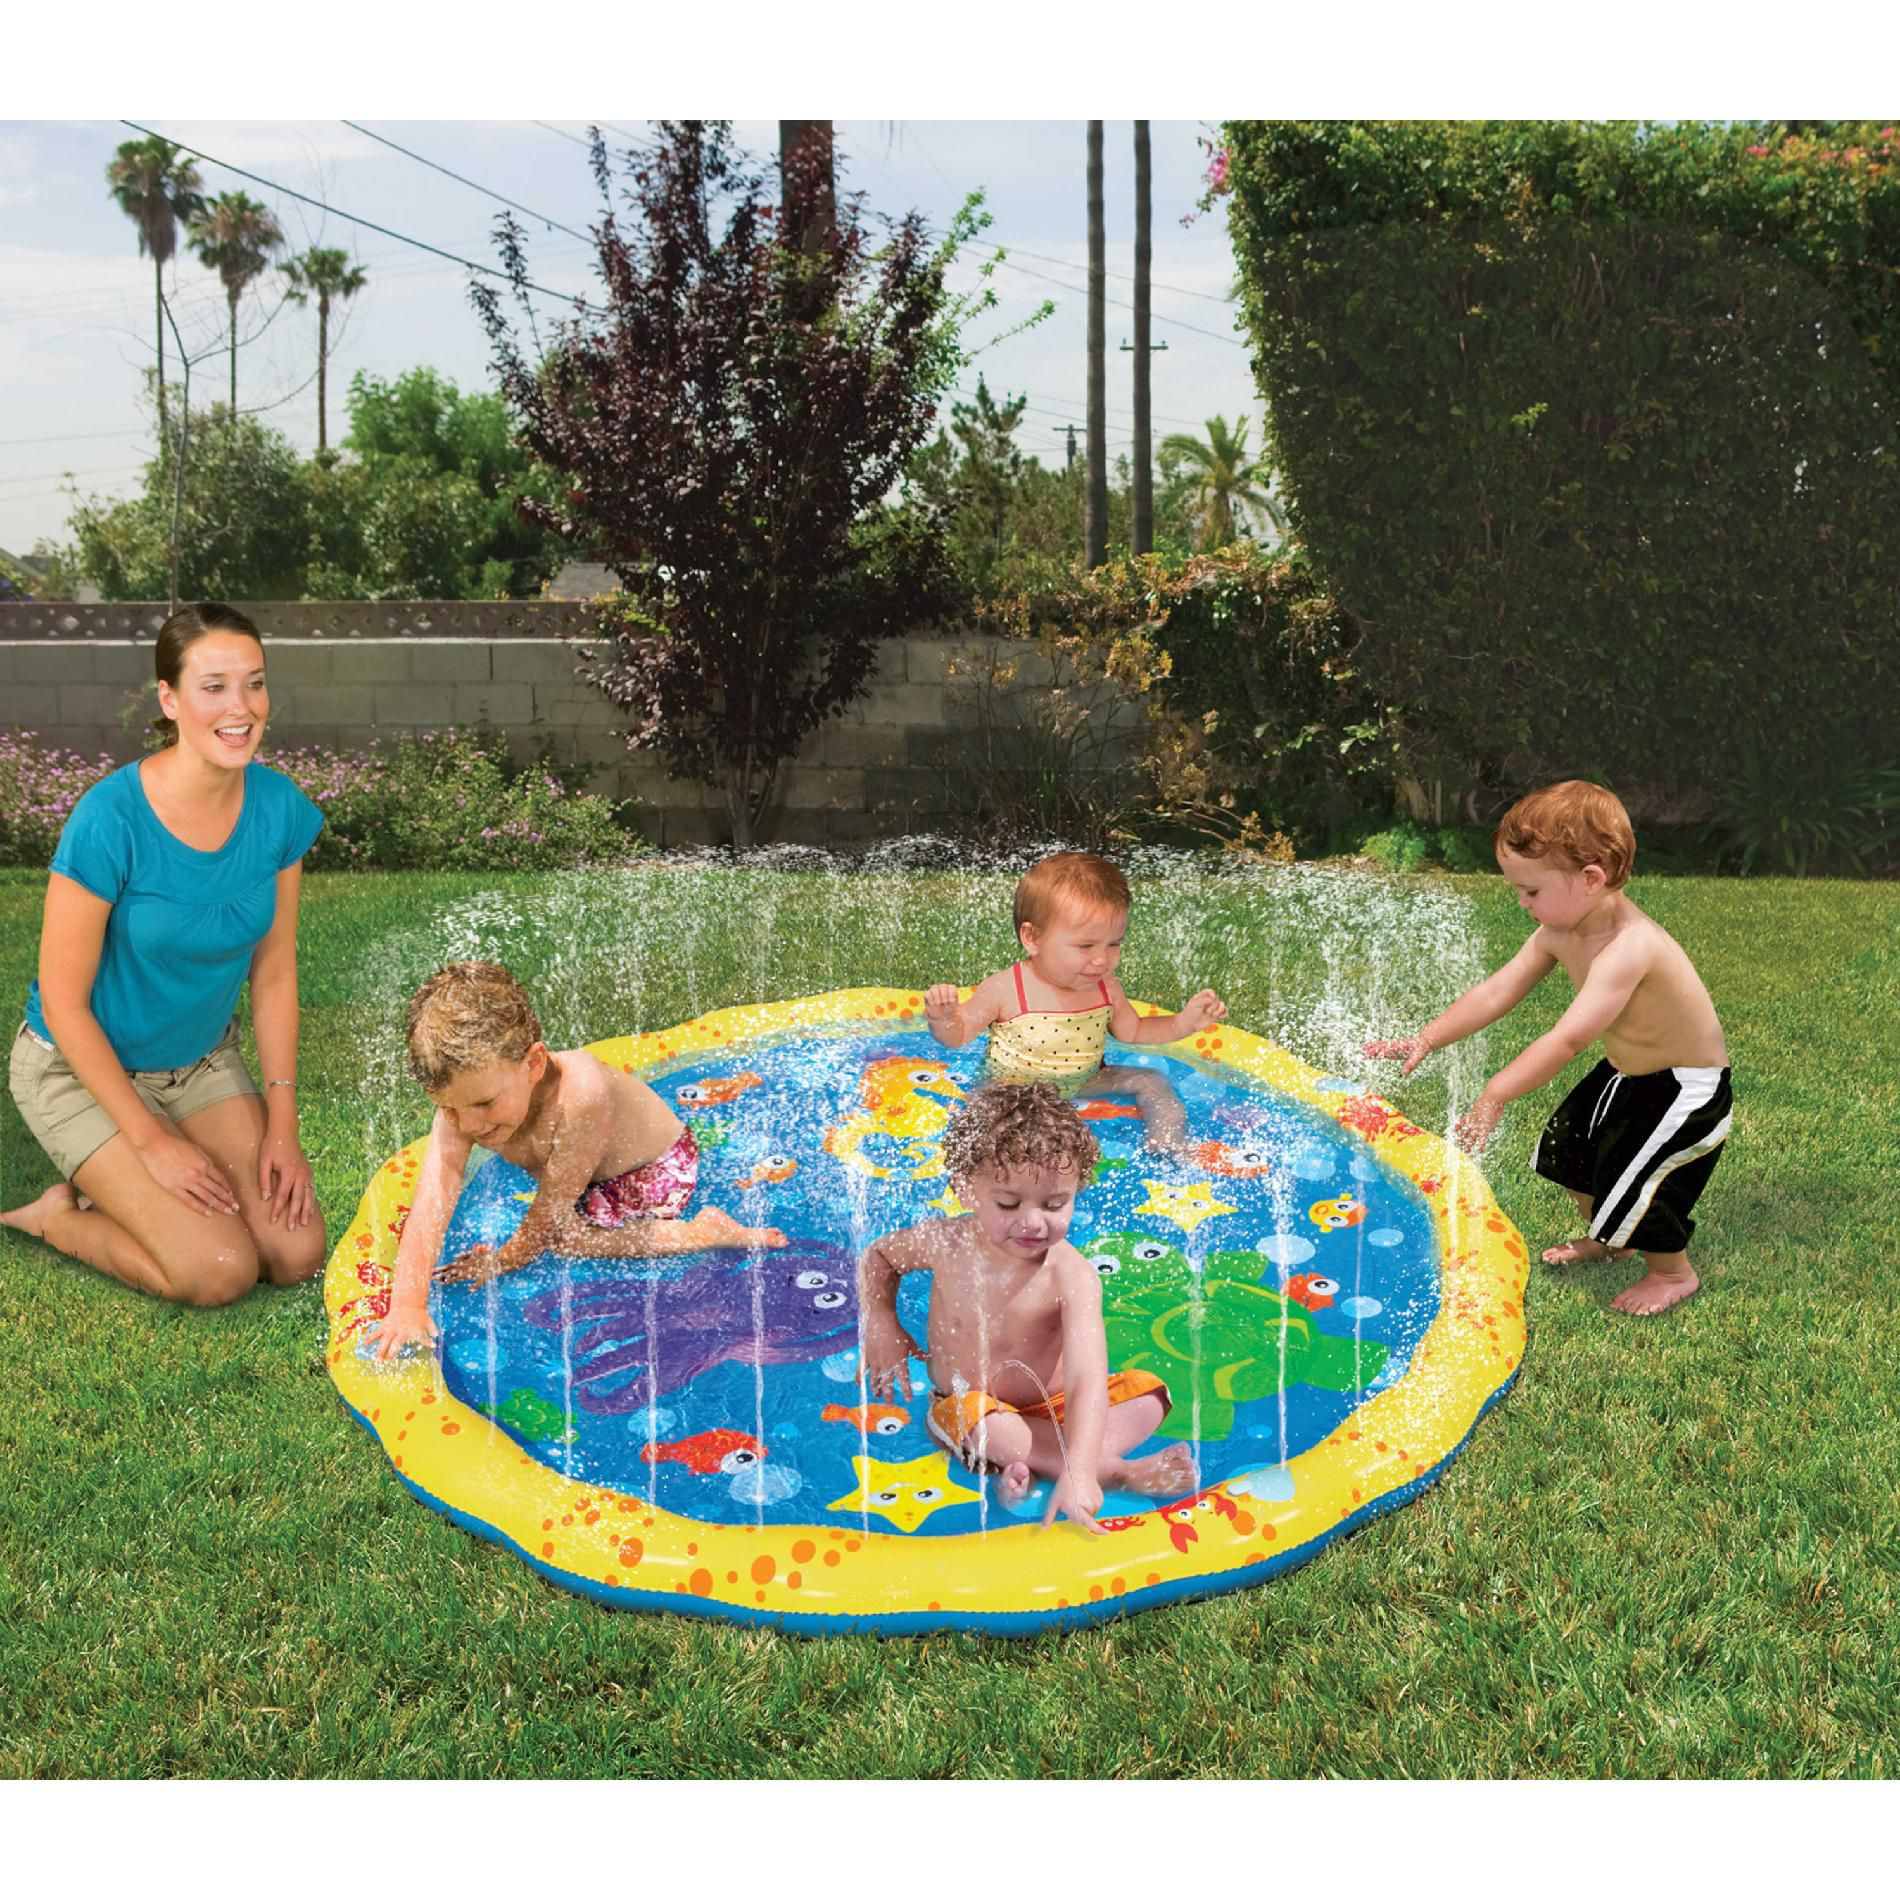 Best ideas about Backyard Water Toy . Save or Pin Sprinkle 'N Splash Water Play Mat Backyard Toddler Toys Now.